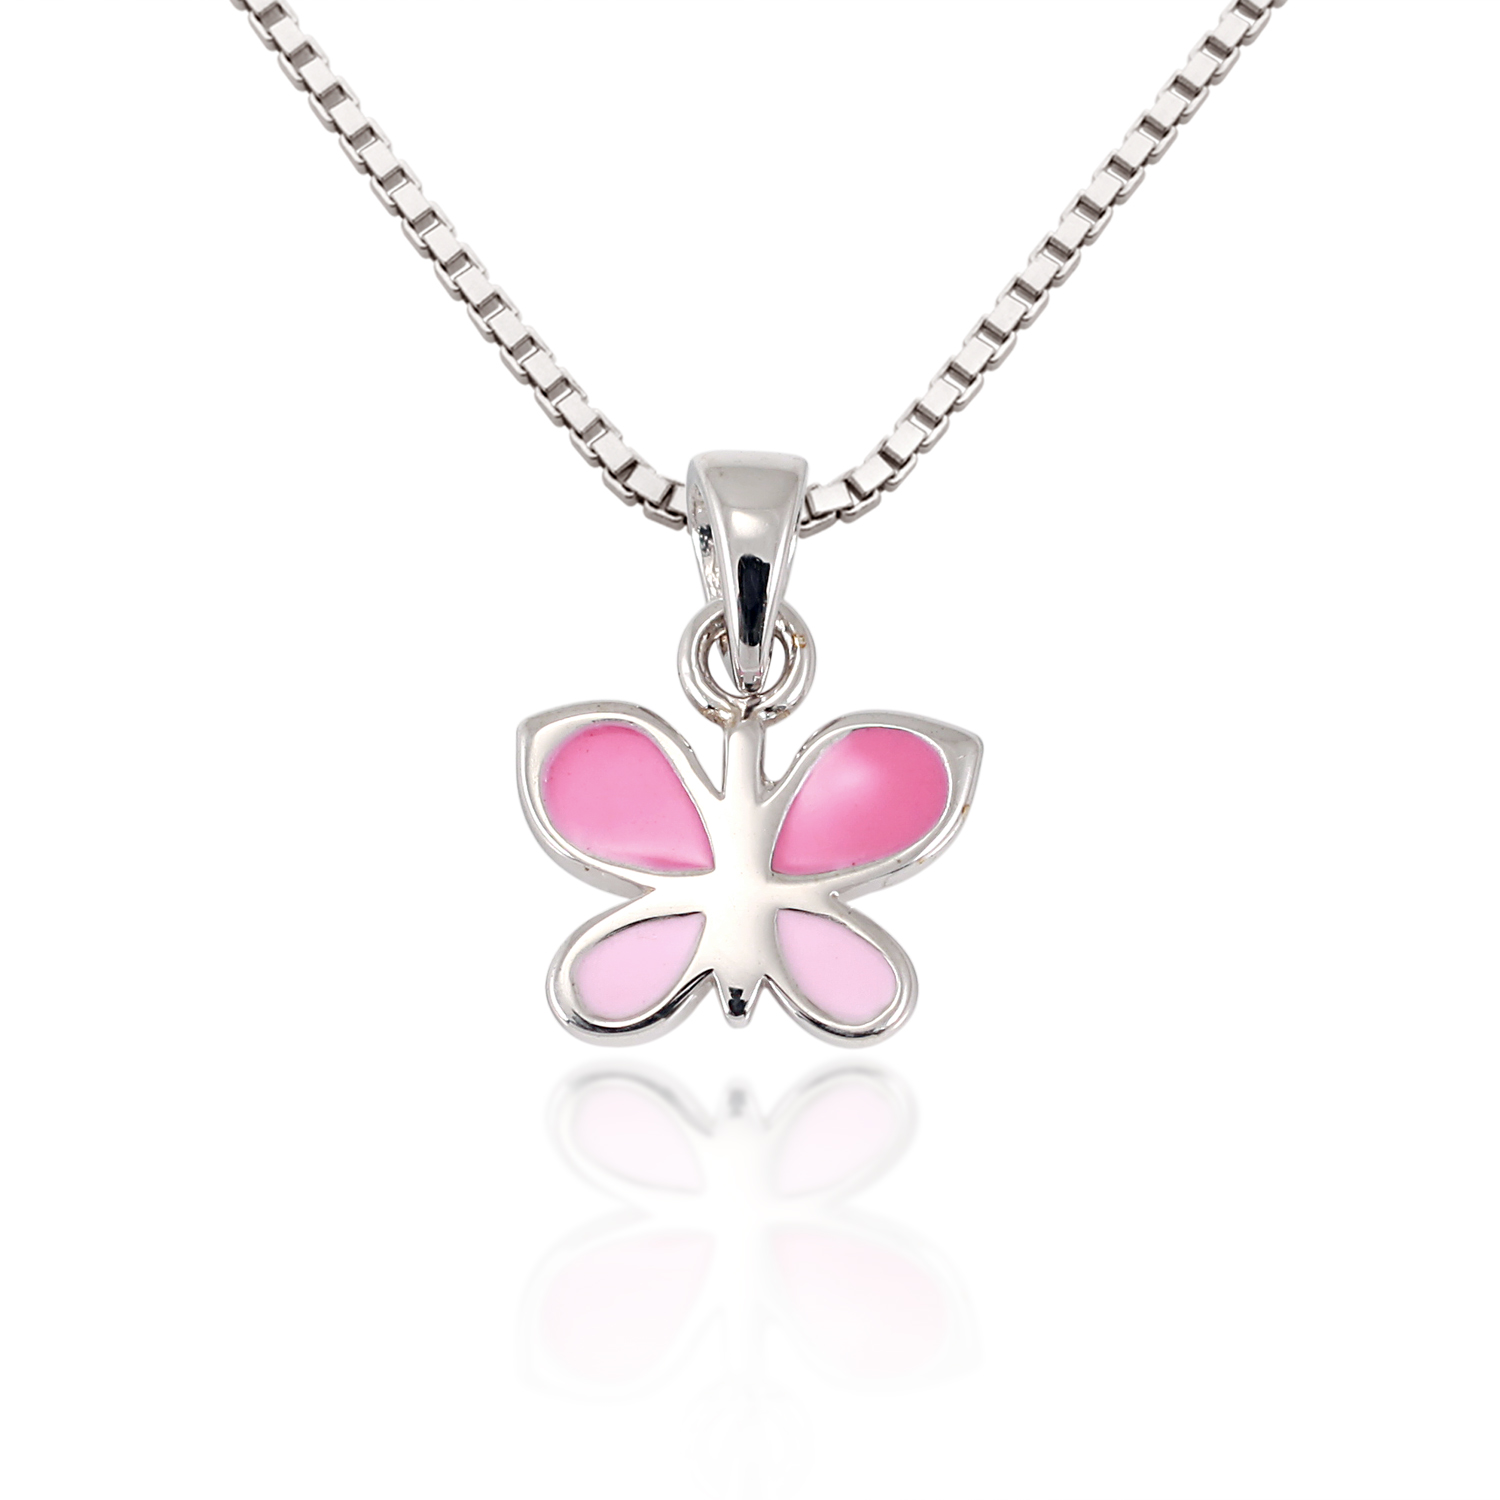 Children's 925 Sterling Silver Pink Butterfly Charm Pendant Necklace, 13-15 inches